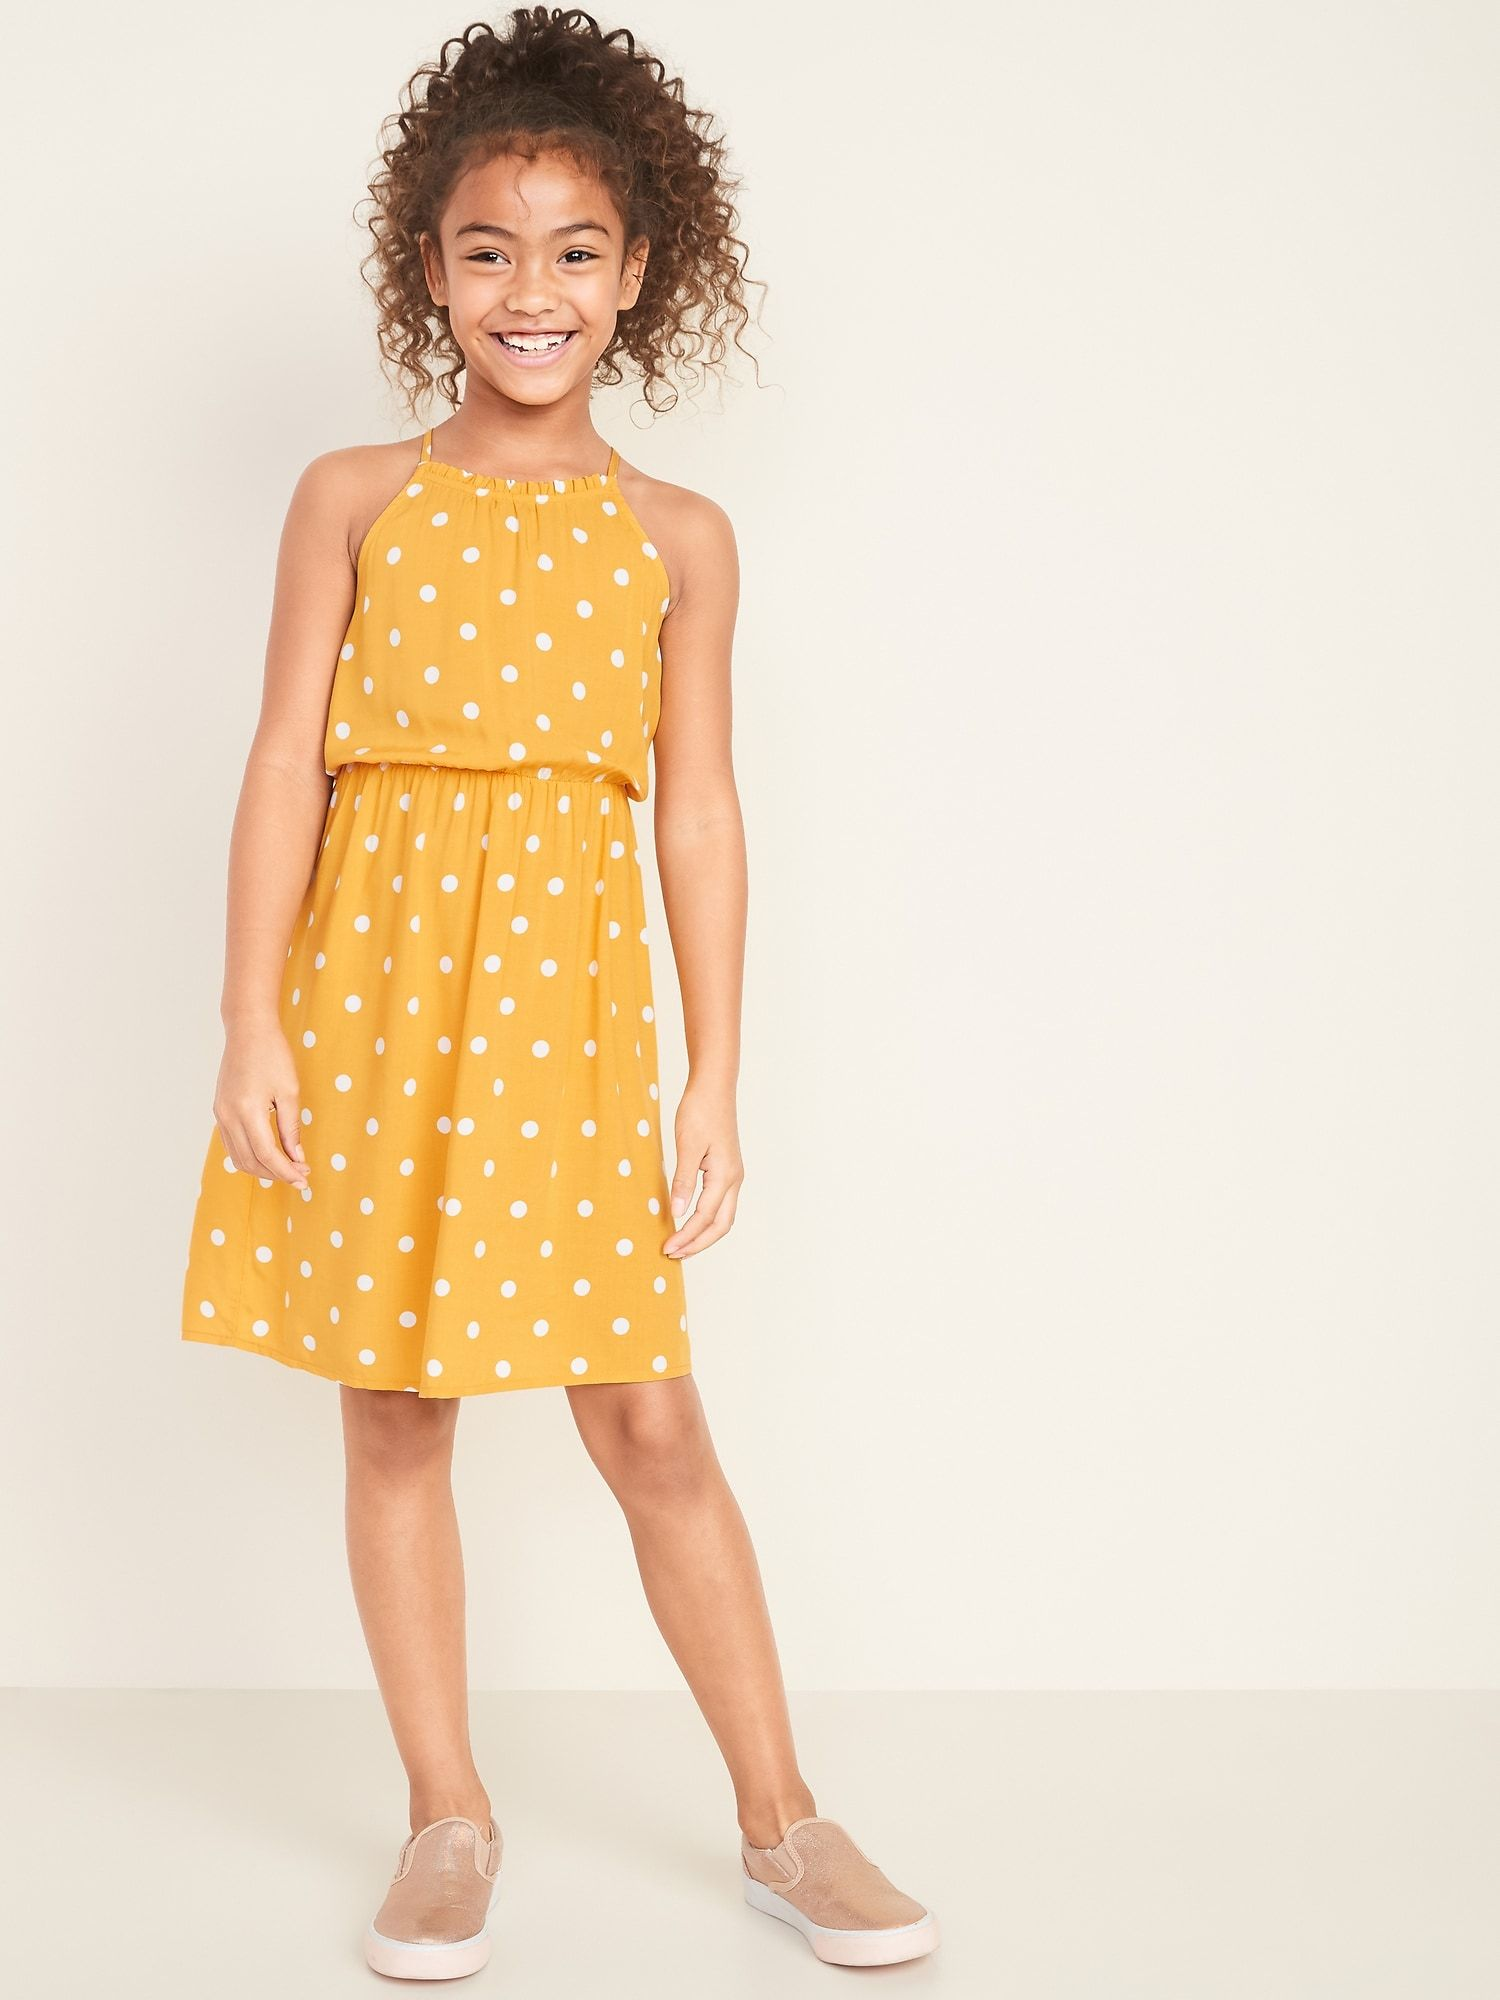 Cinched Waist Cami Dress For Girls In 2021 Rayon Dress Summer Girls Dresses Girls Dresses Online [ 2000 x 1500 Pixel ]